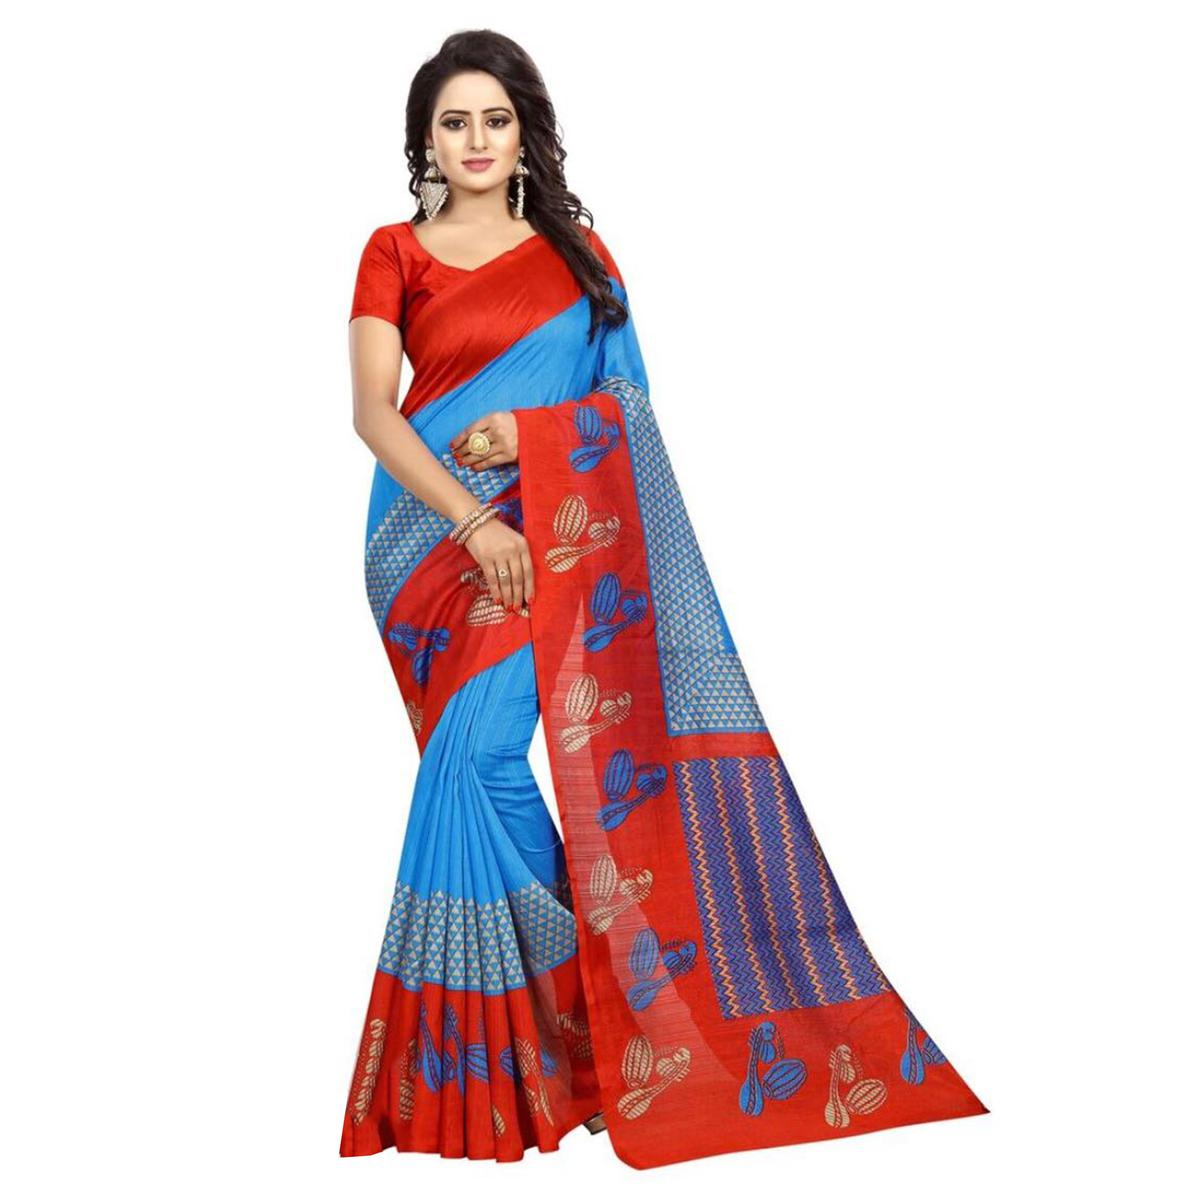 Staring Sky Blue Colored Printed Bhagalpuri Silk Saree